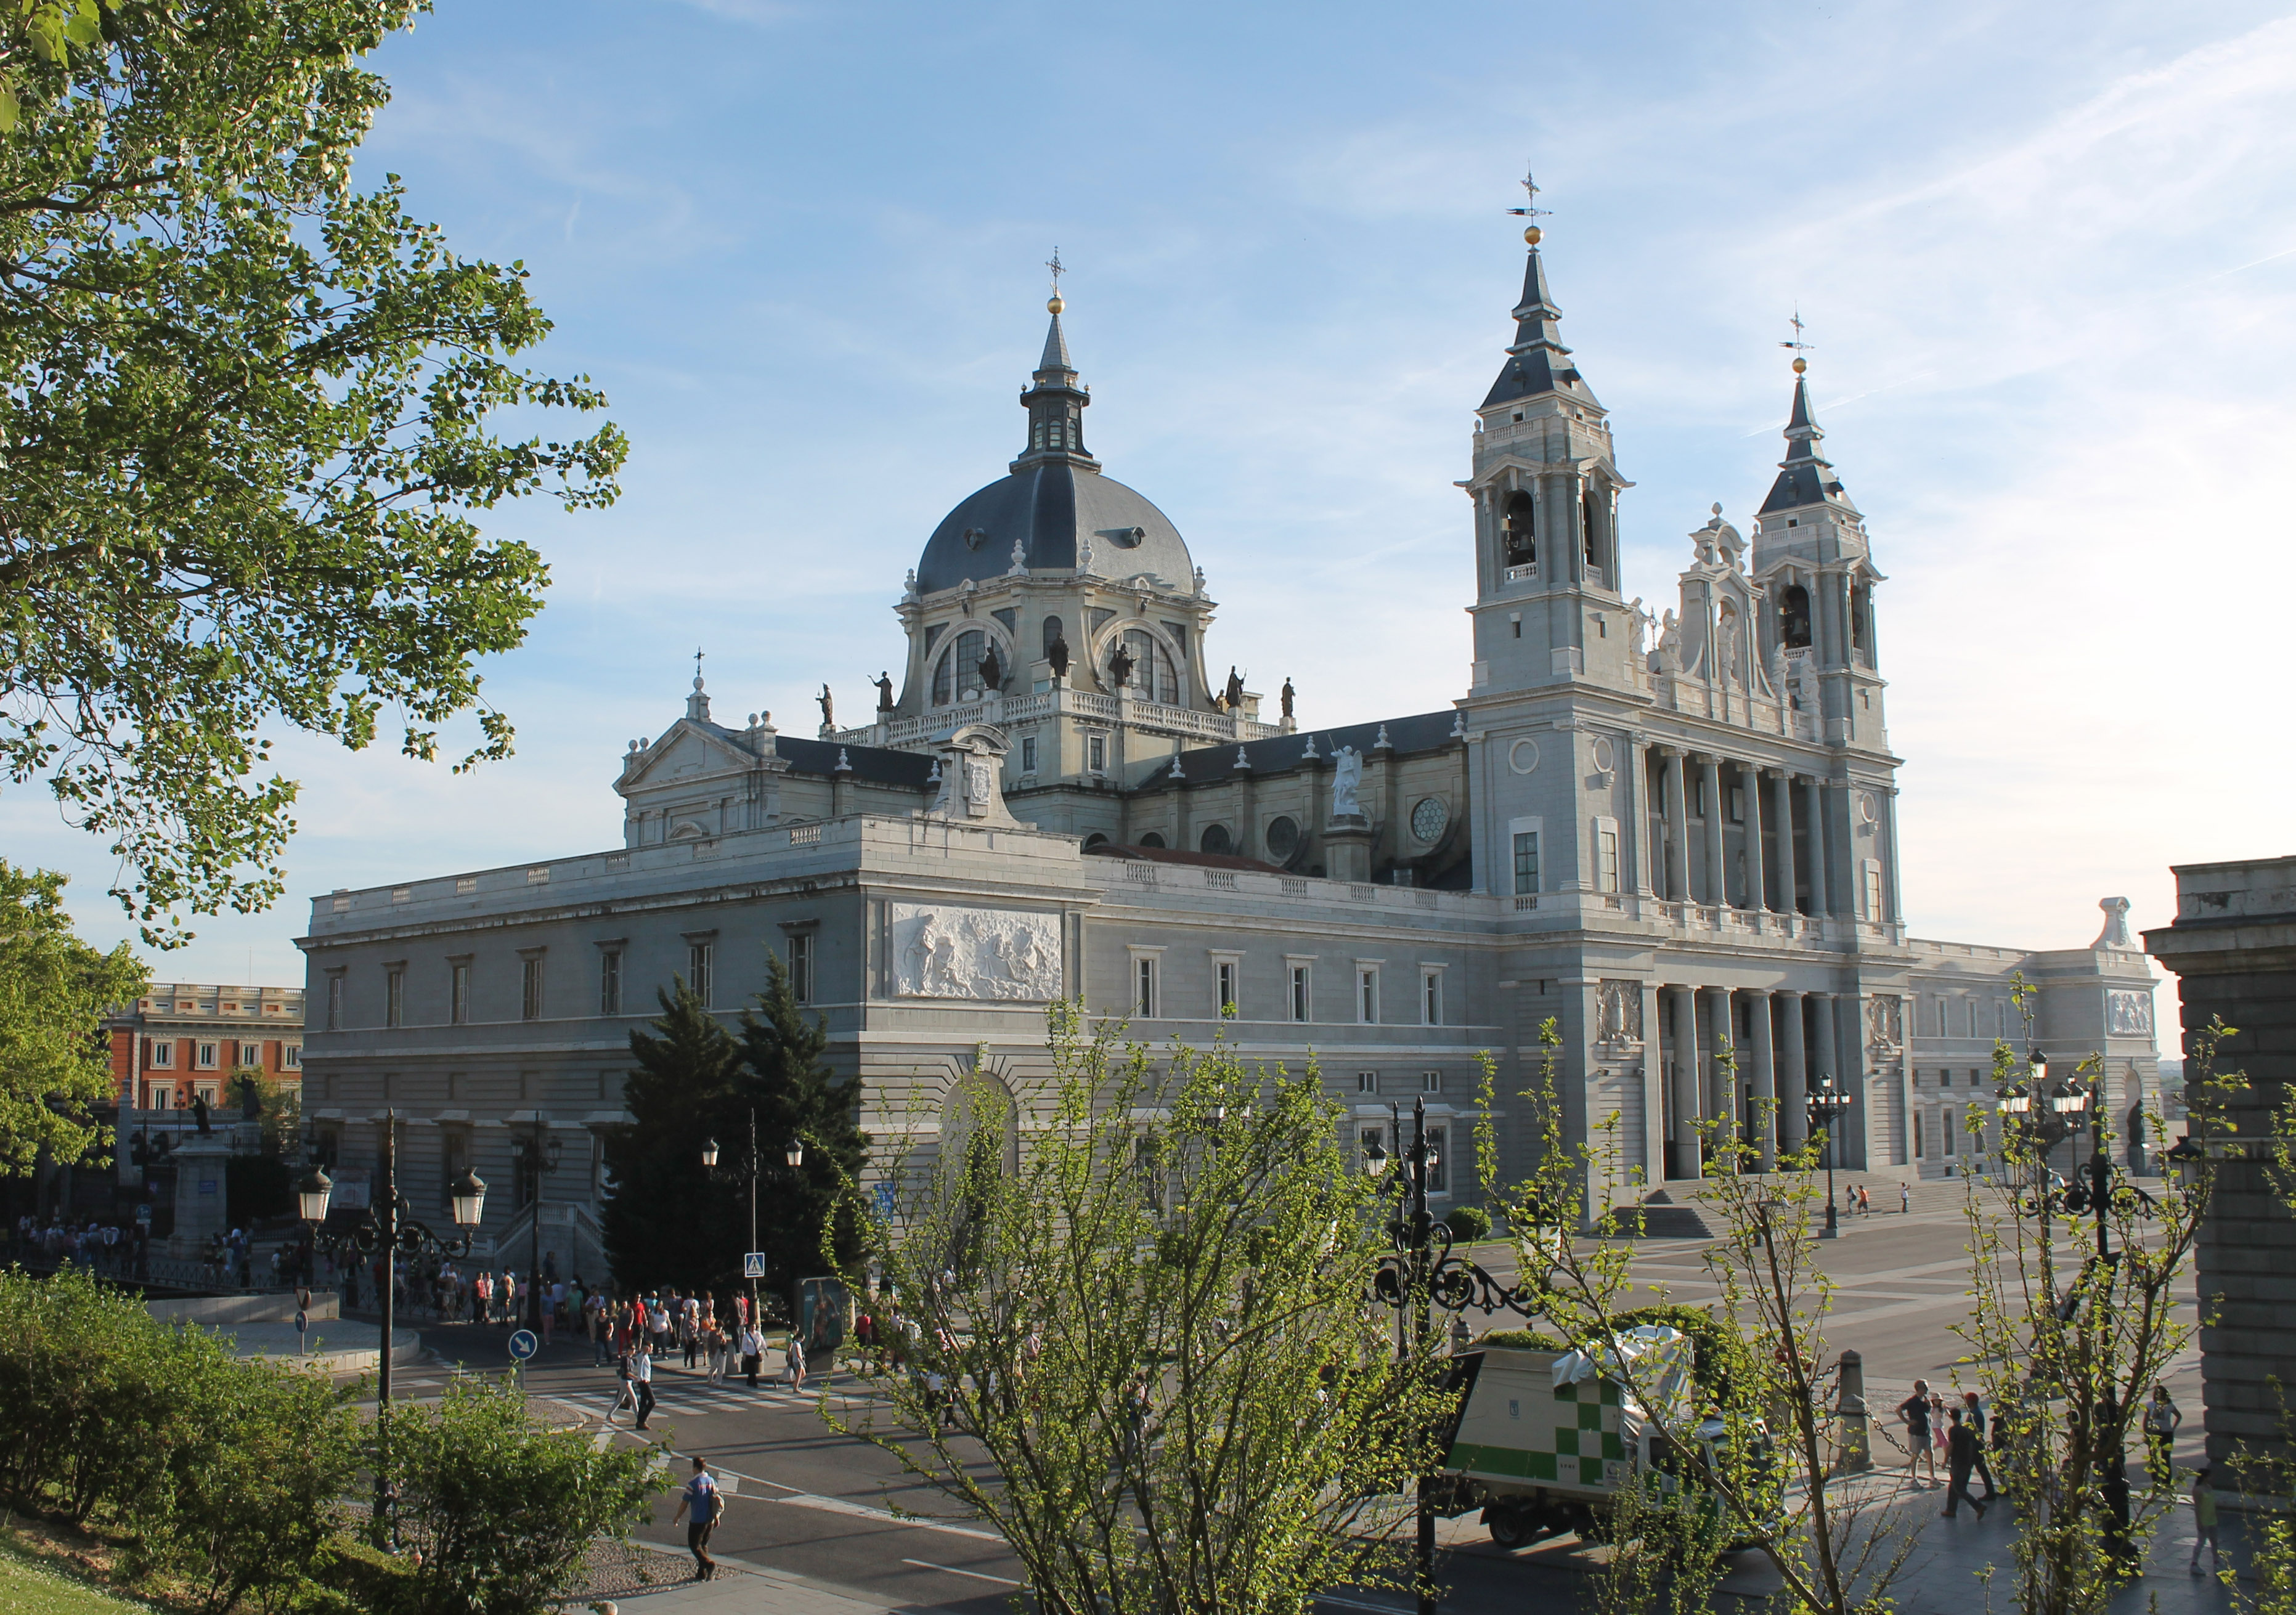 Almudena Cathedral in Madrid (Spain) from the north-east angle.